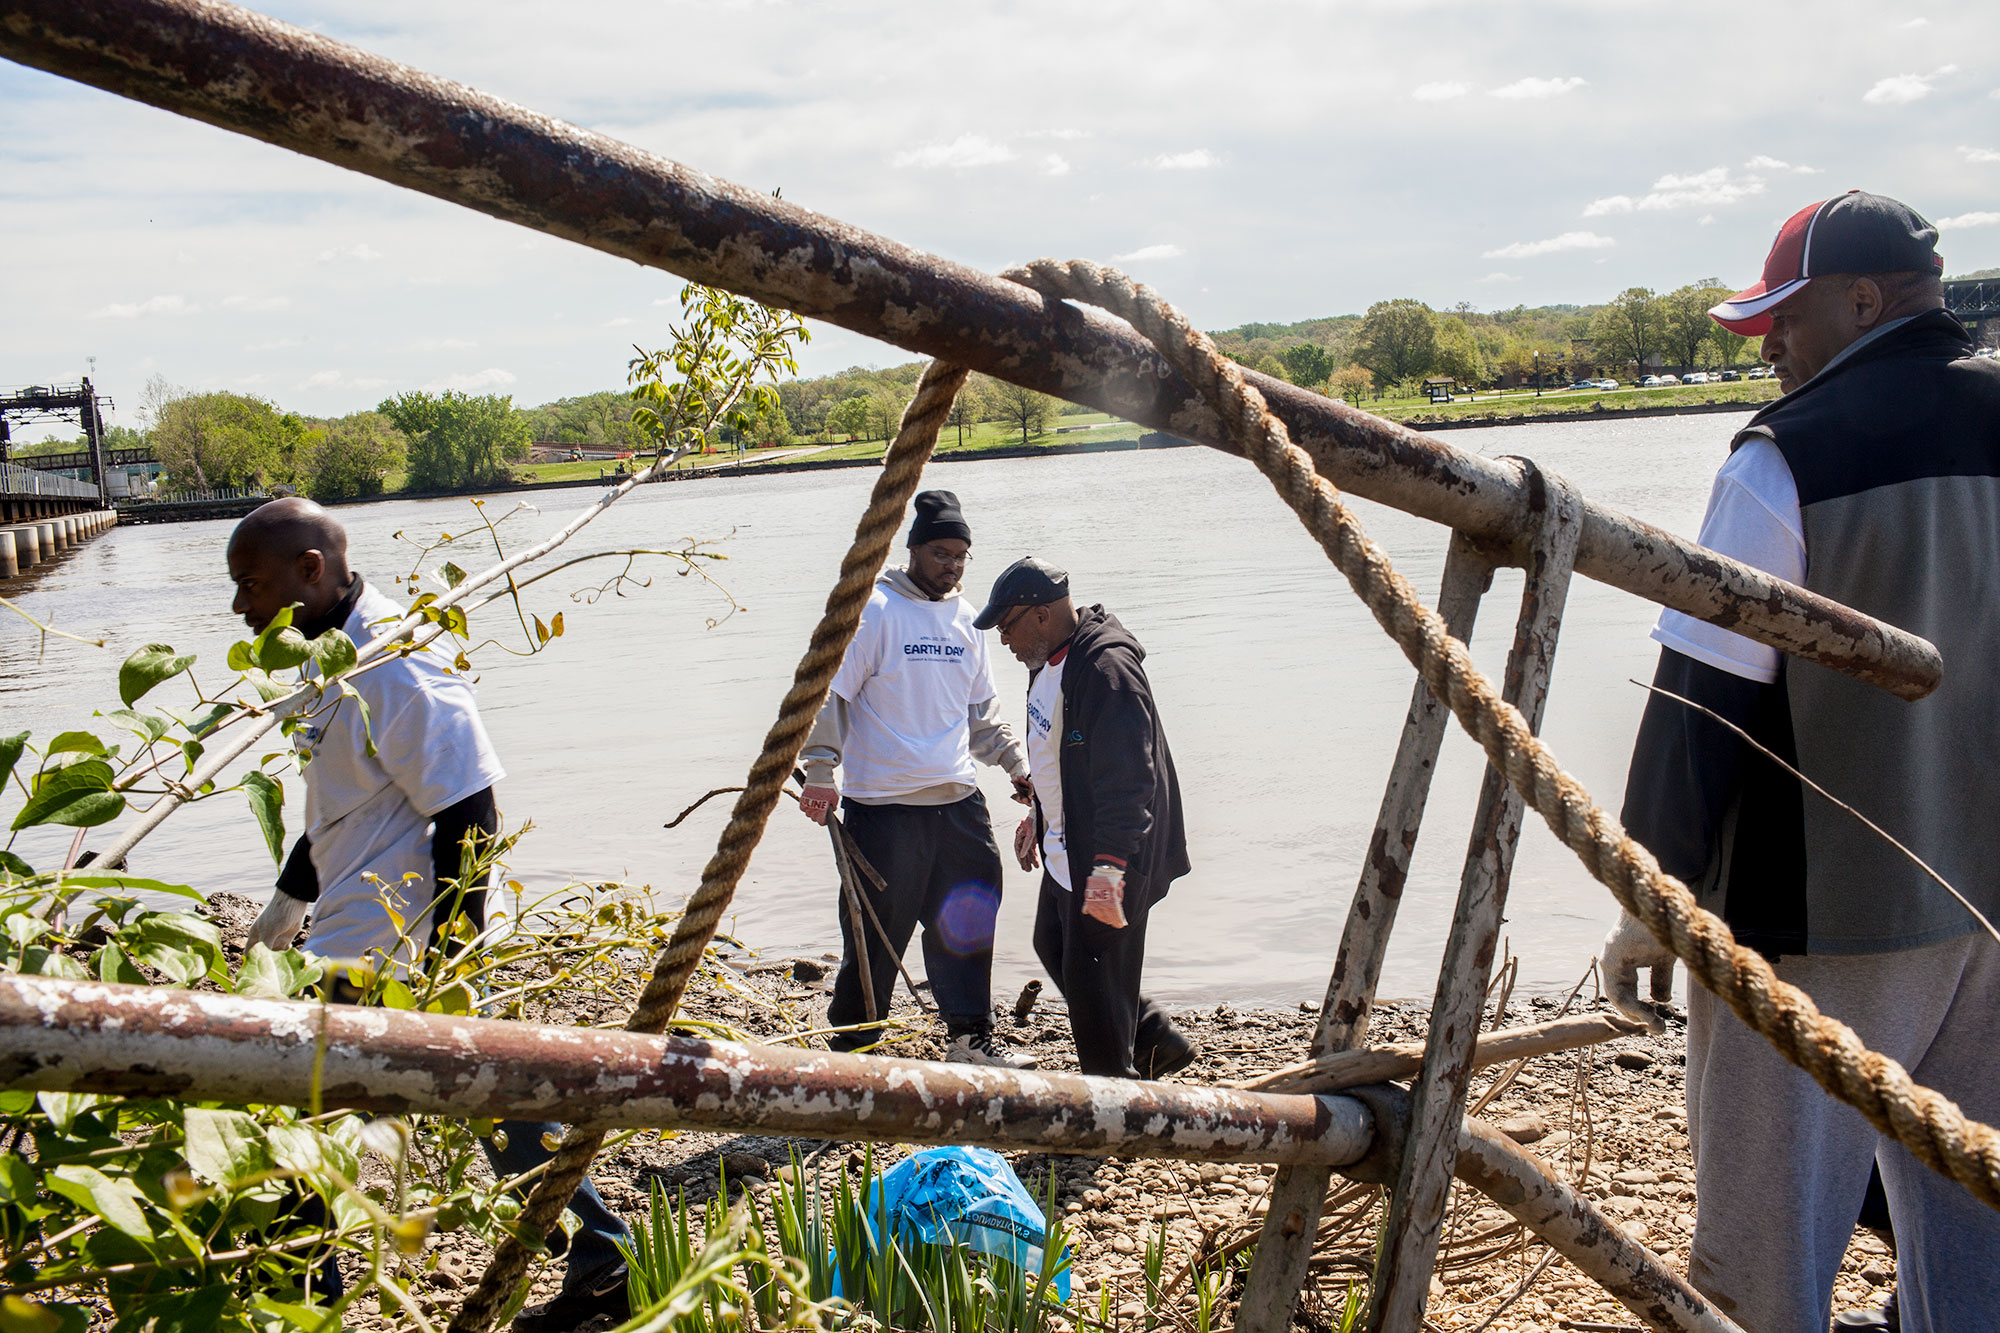 """Volunteers from the organization Concerned Black Men and their mentoring program """"Just Say Yes"""" remove debris from the banks of the Anacostia River at Seafarers during the annual Earth Day clean up, now organized by the Anacostia Watershed Society, in 2013."""